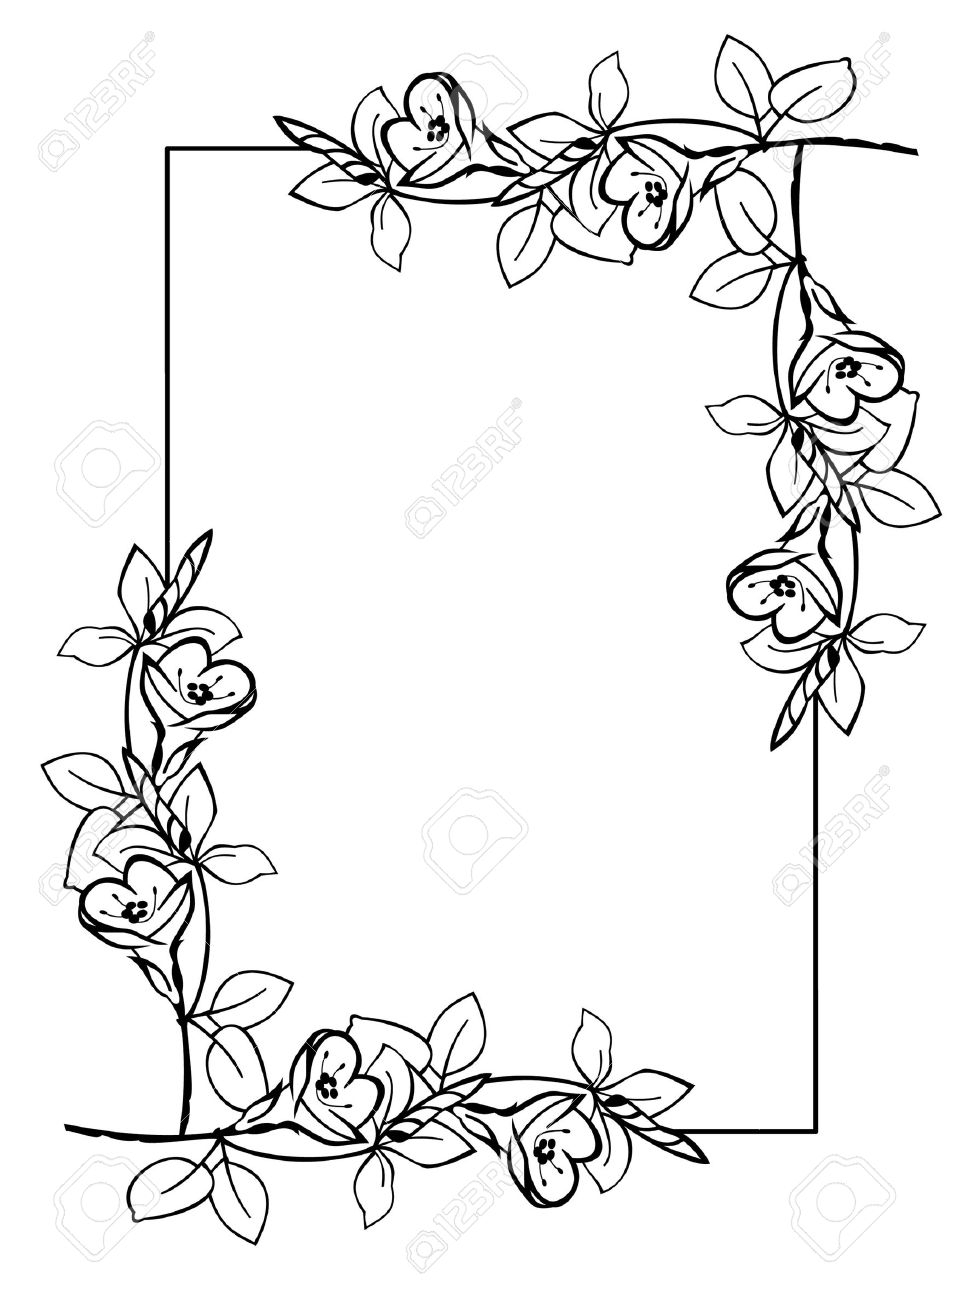 968x1300 Flowers Drawings With Border Asketchaday Connecticutramblings